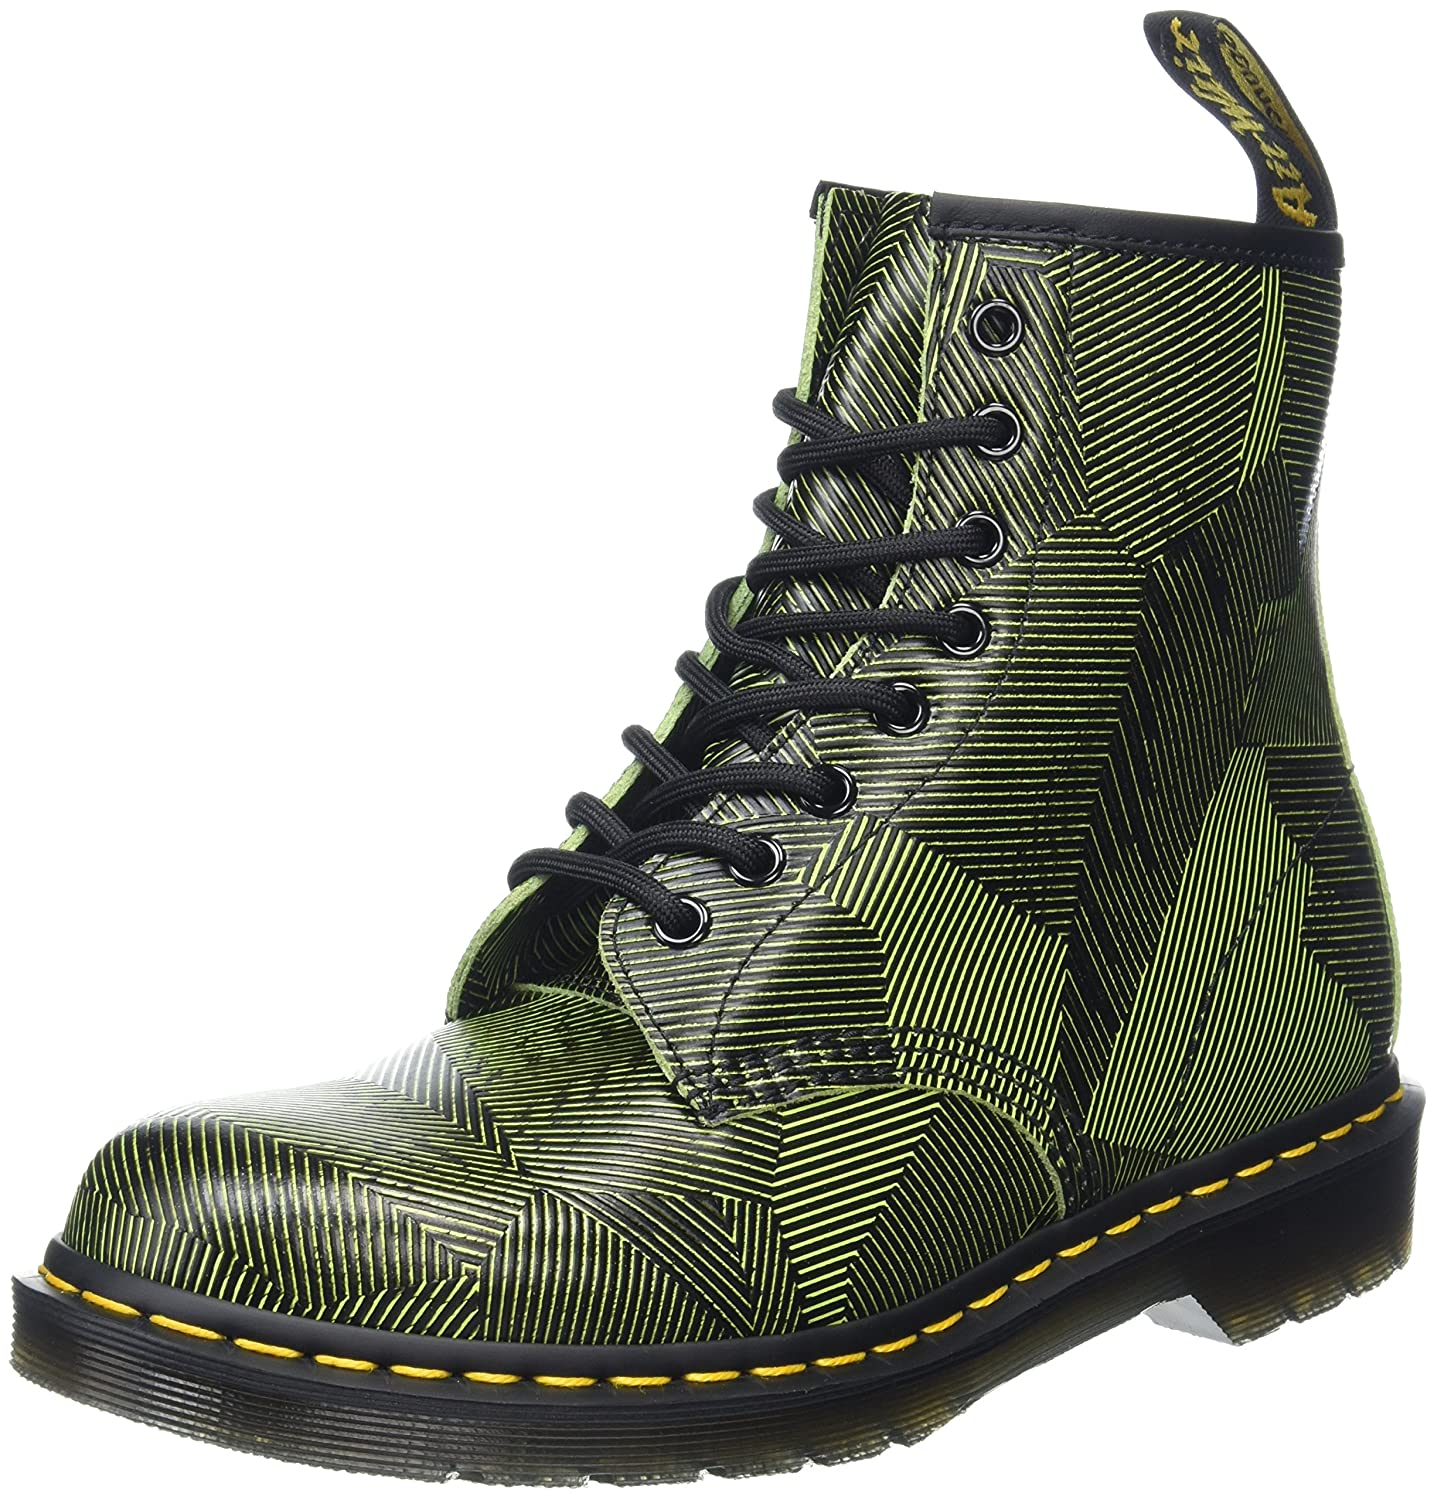 Dr. Martens 1460 8 Eye Boot B01MS1ZKTJ 7 M UK|Neon Yellow/Black Geostripe